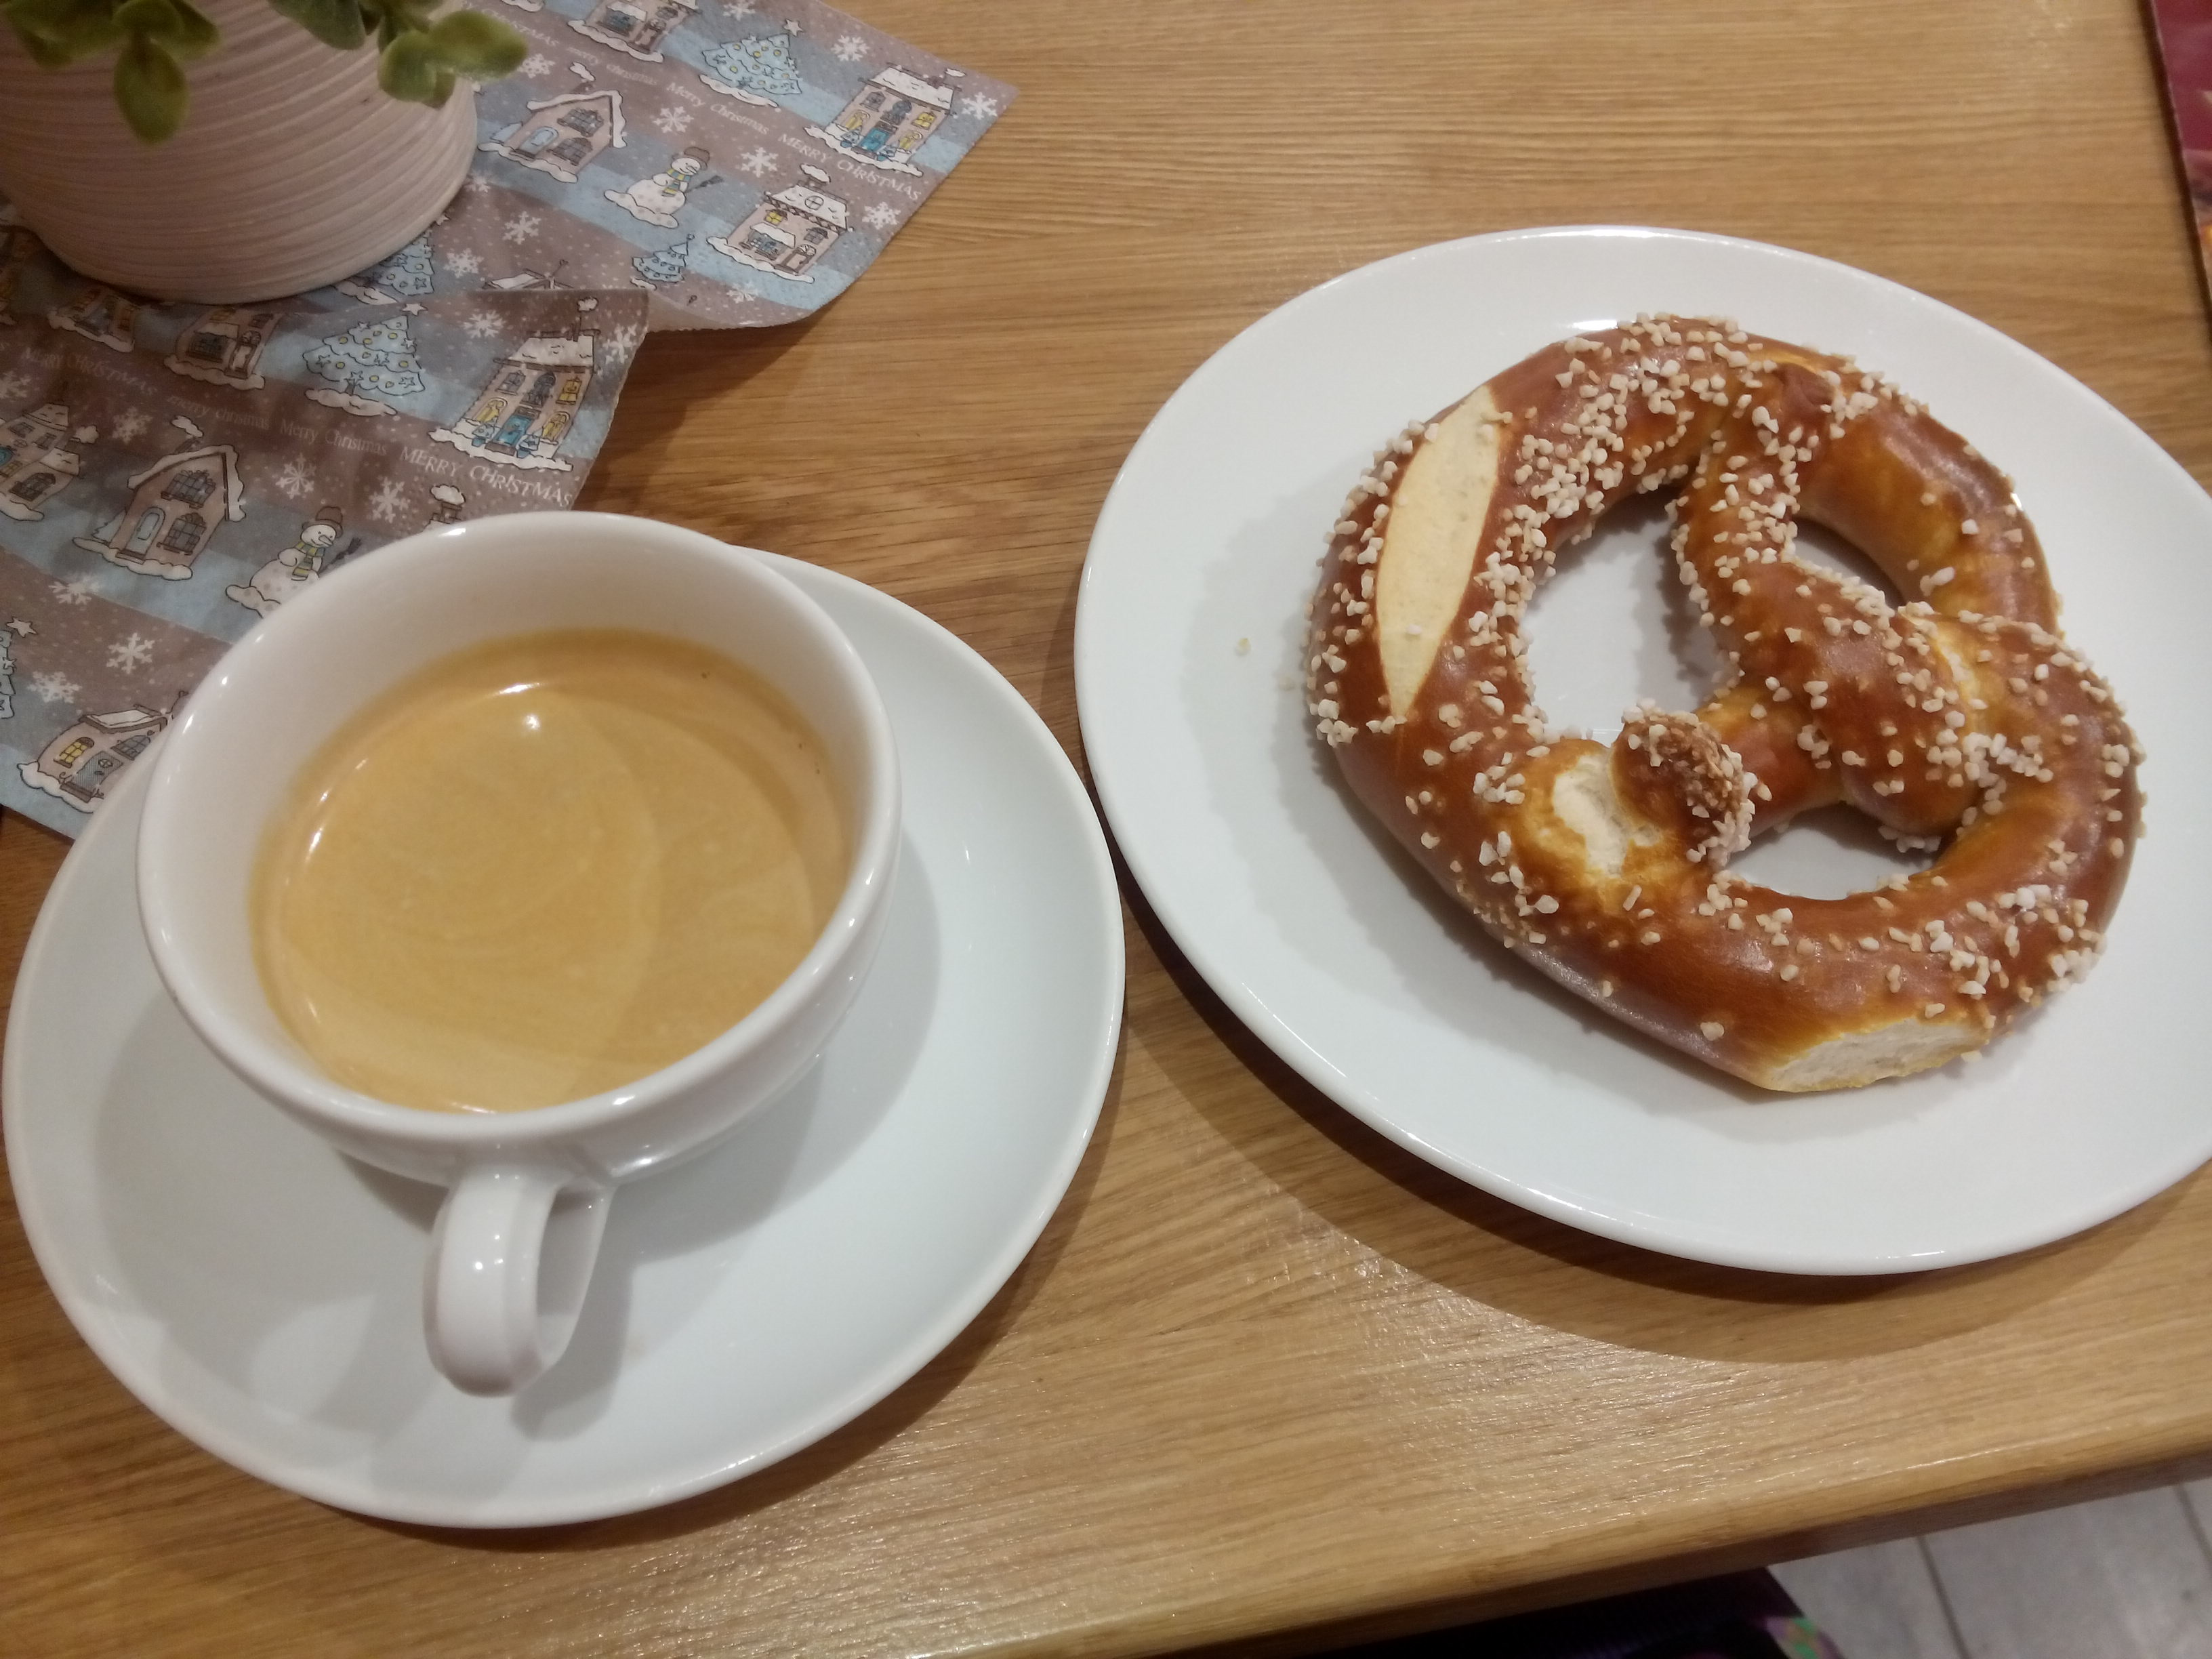 A coffee and a pretzel on a plate, on a wooden table with some blue and silver christmassy paper in the corner